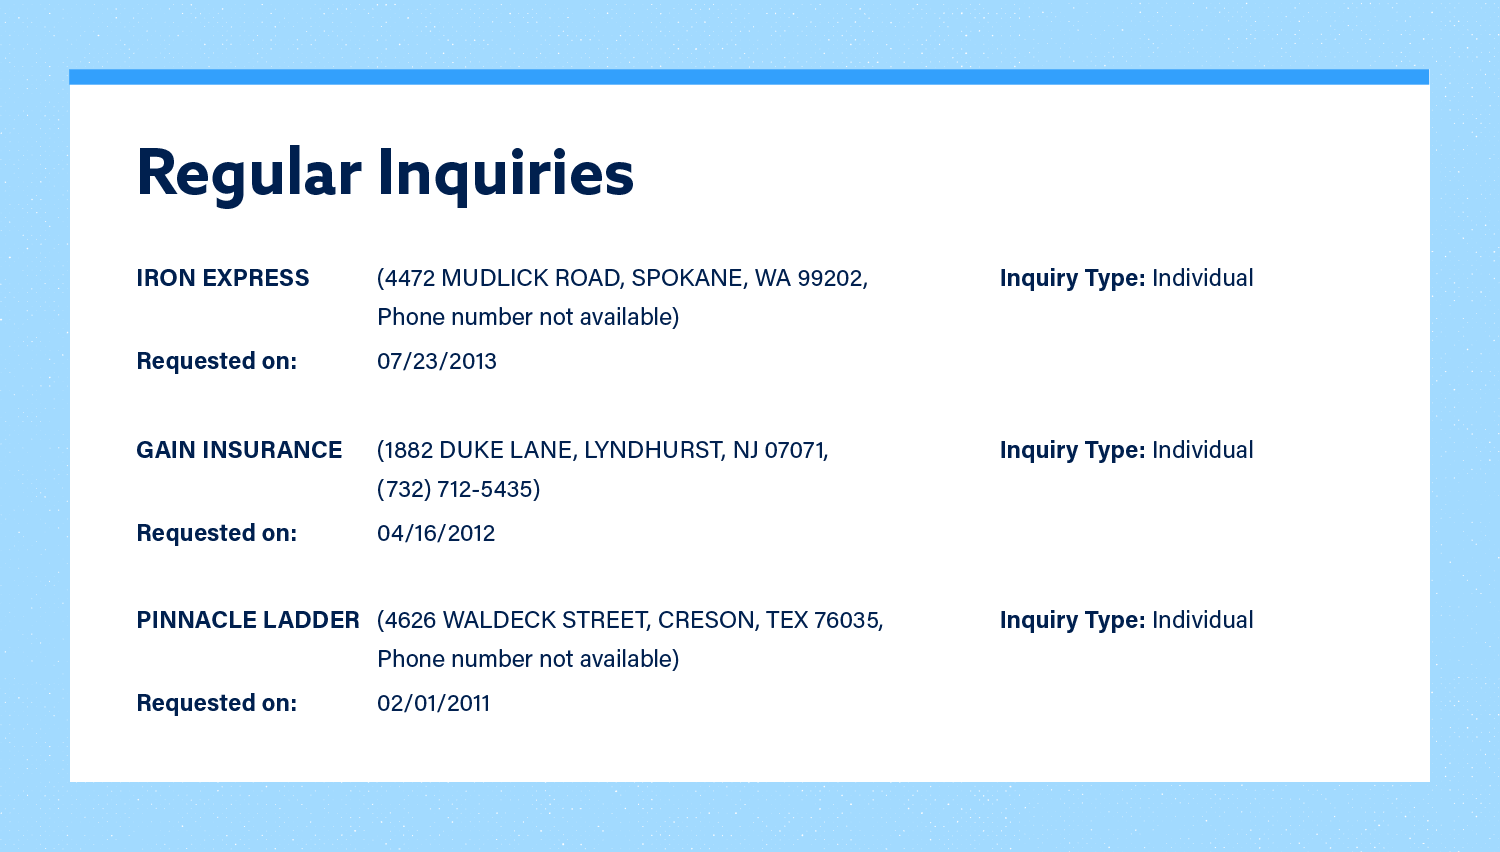 Regular Inquiries Image